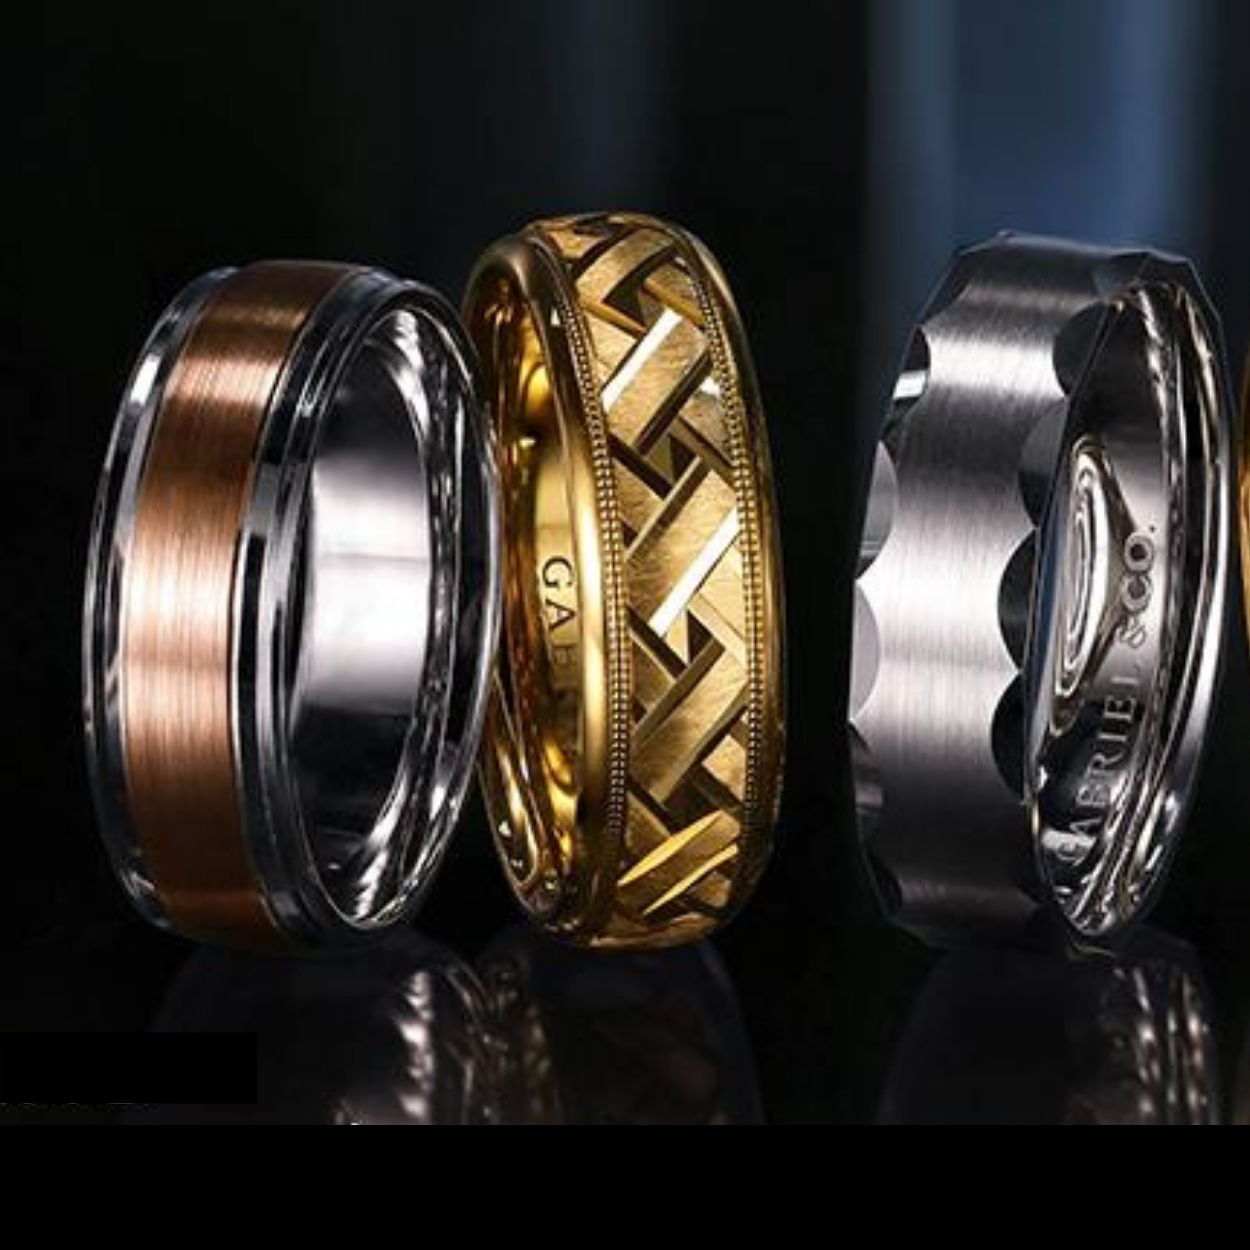 A Guide For Buying The Perfect Men's Wedding Band